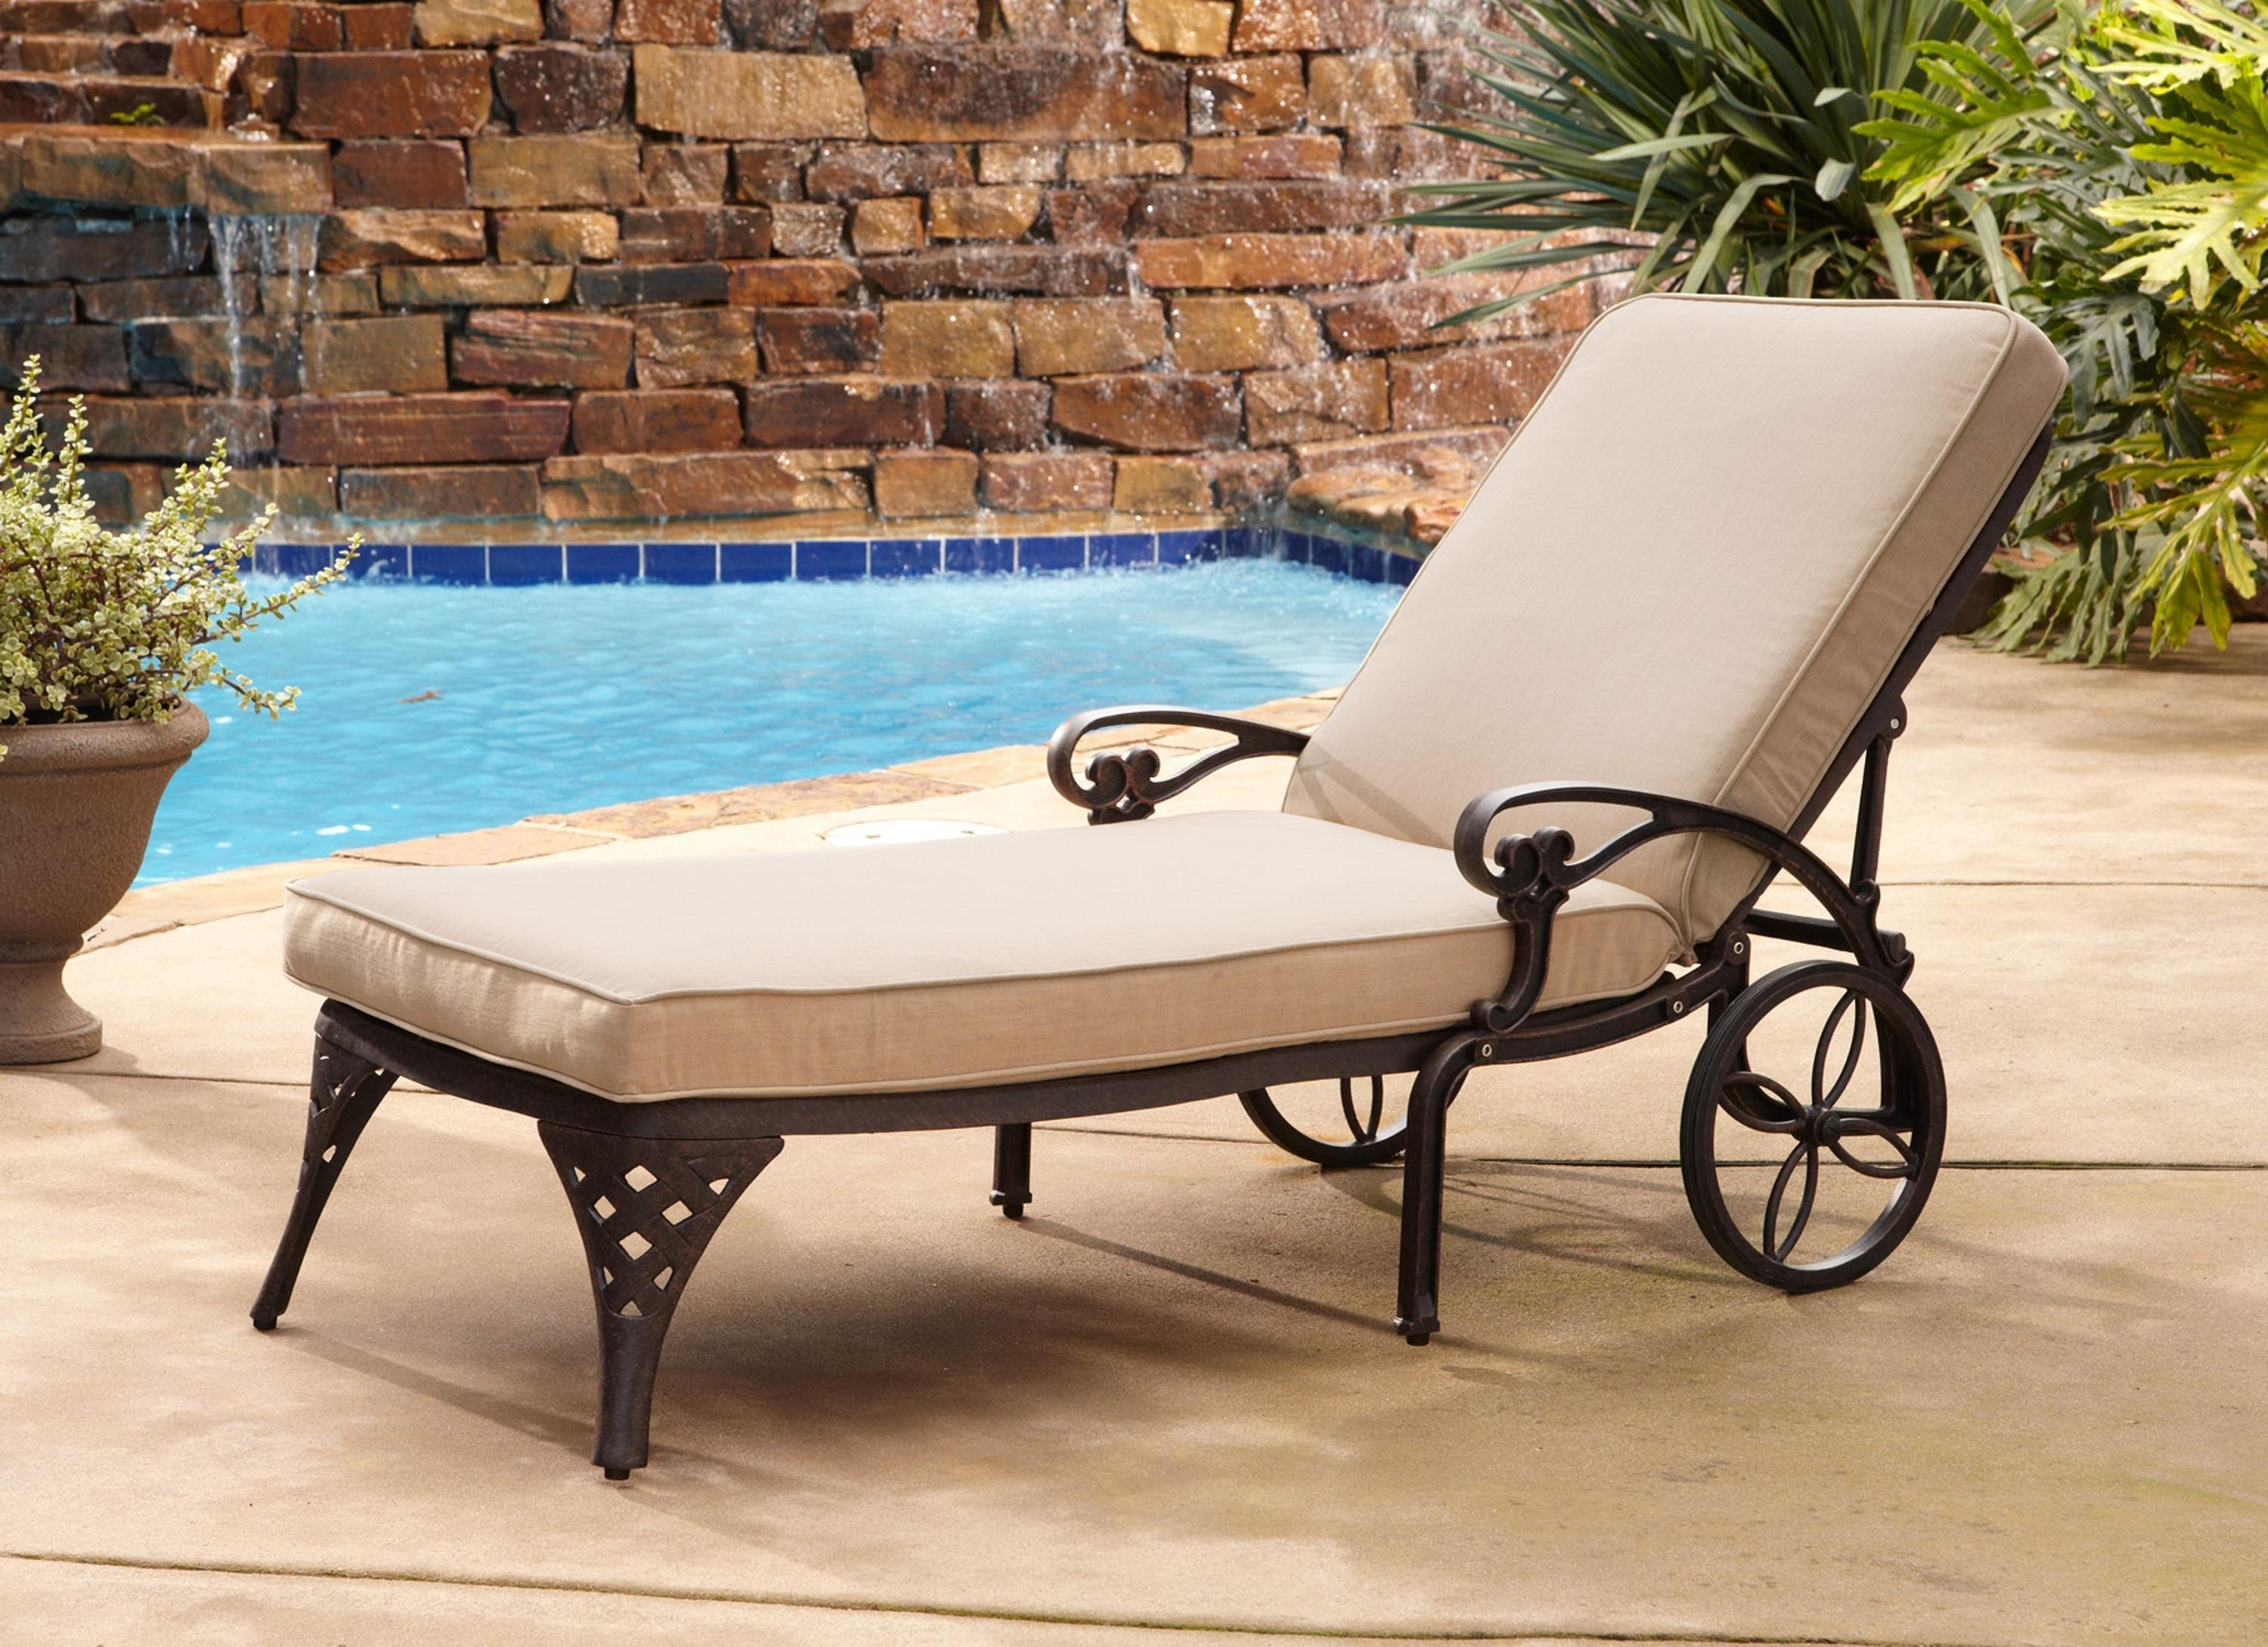 Recent Convertible Chair : Lounge Patio Lounge Chairs With Wheels Metal In Outdoor Pool Furniture Chaise Lounges (View 14 of 15)